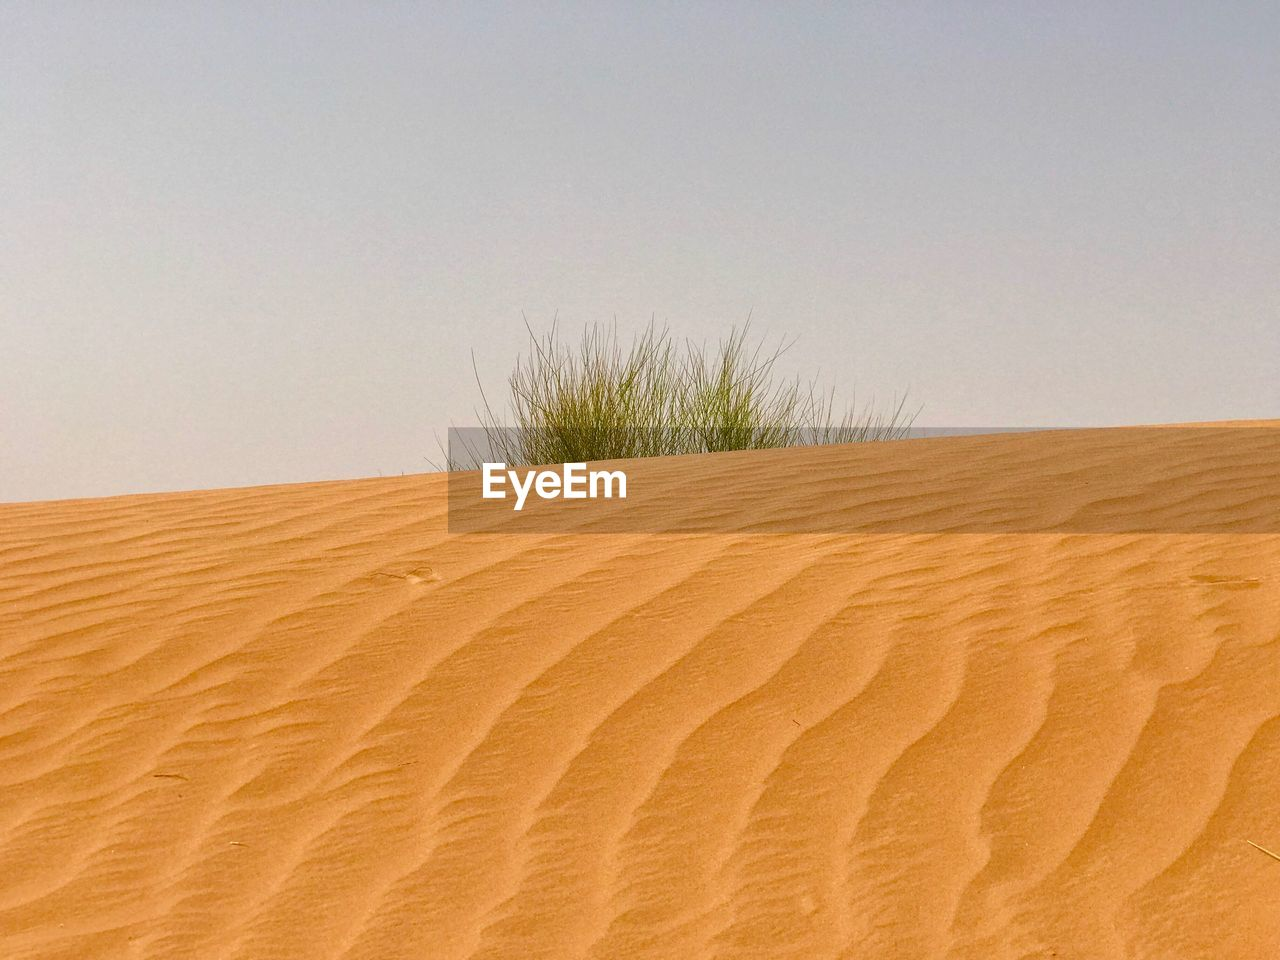 sand, sand dune, sky, land, desert, landscape, climate, no people, plant, scenics - nature, arid climate, copy space, nature, tranquility, environment, tranquil scene, horizon over land, clear sky, pattern, beauty in nature, atmospheric, marram grass